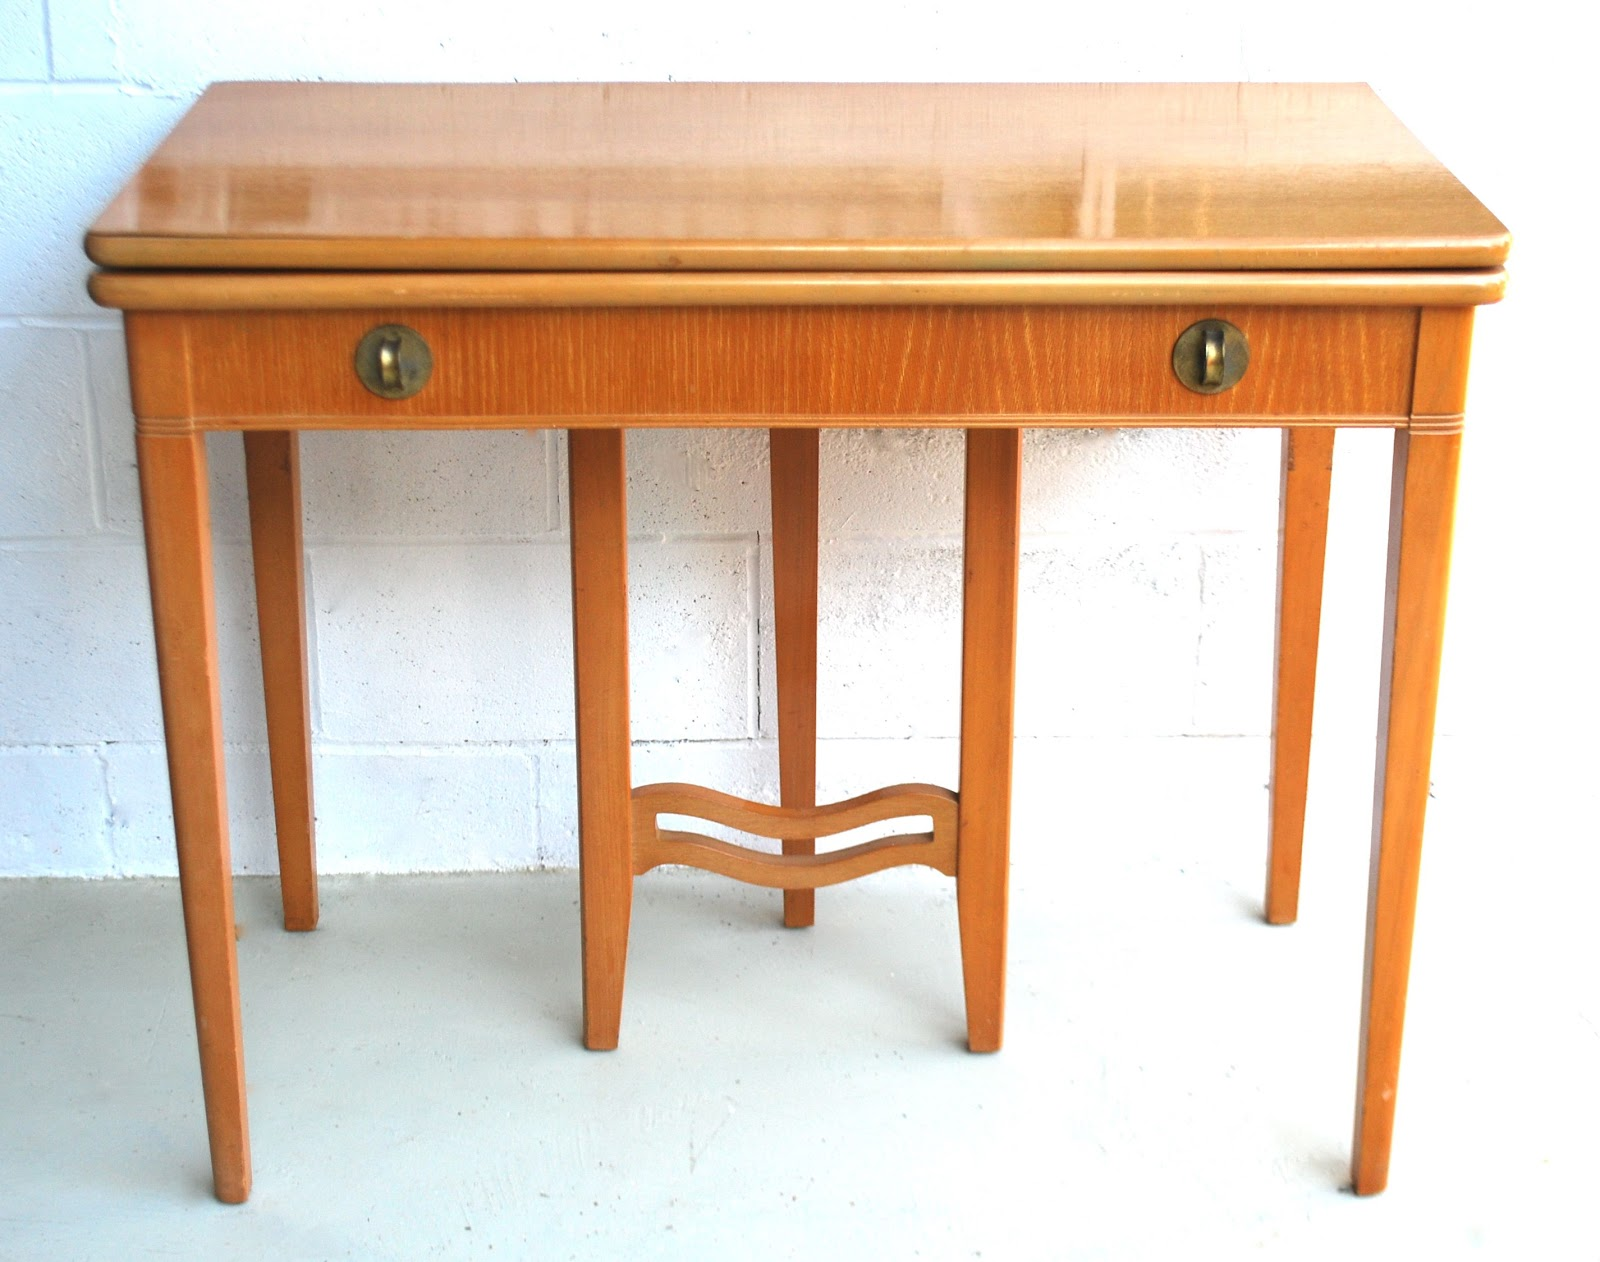 50s retro console table - photo #32